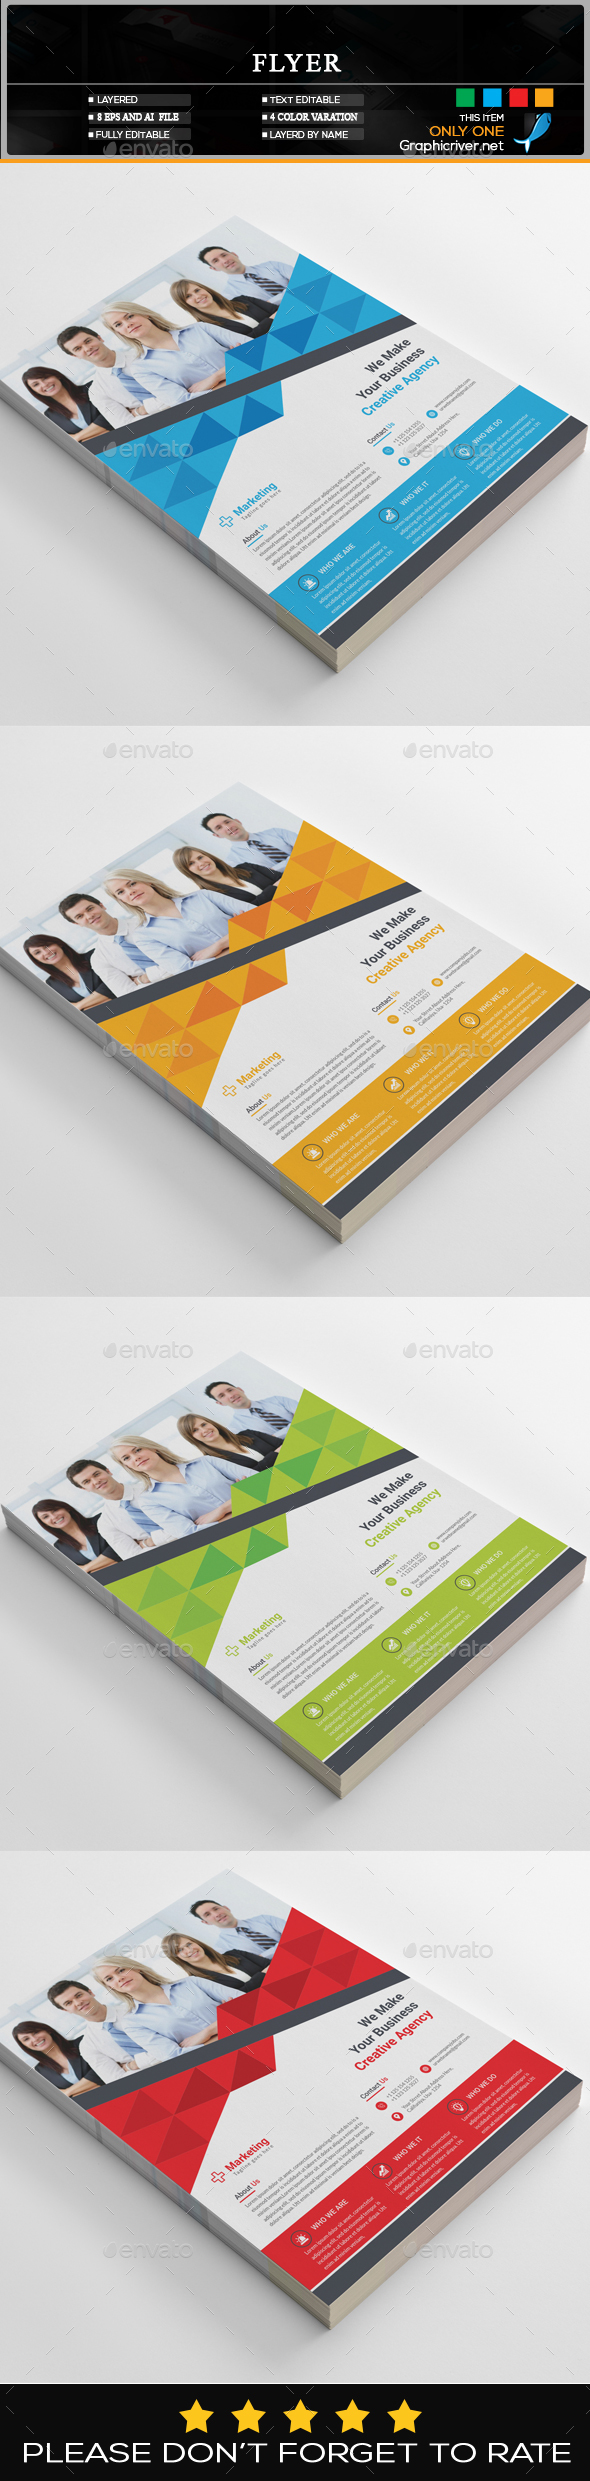 GraphicRiver Flyer 20306429